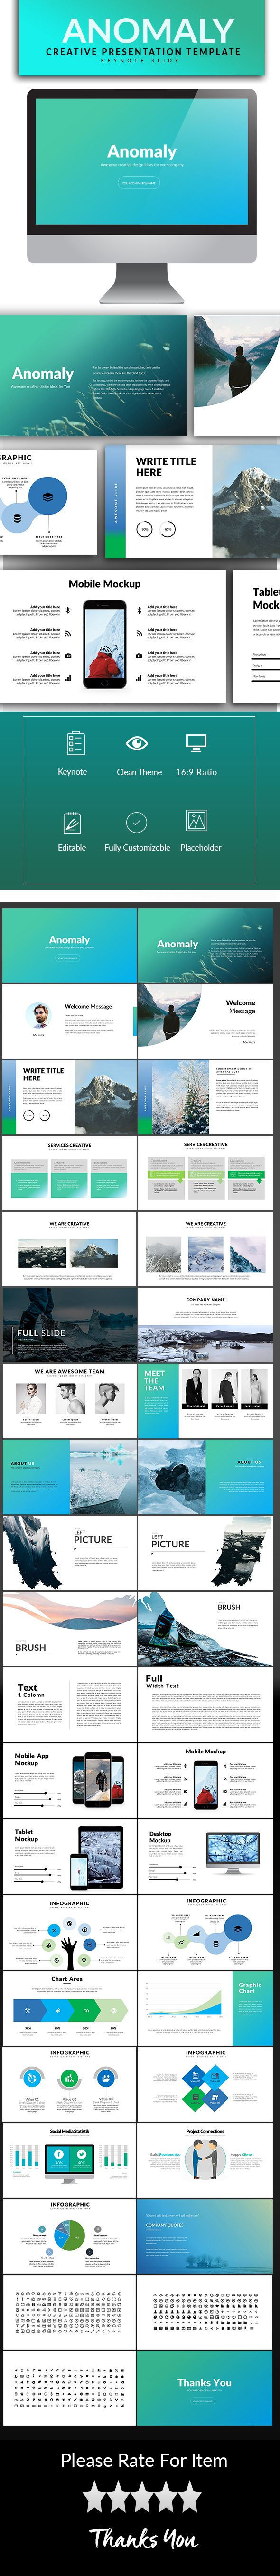 Anomaly keynote template ccuart Gallery